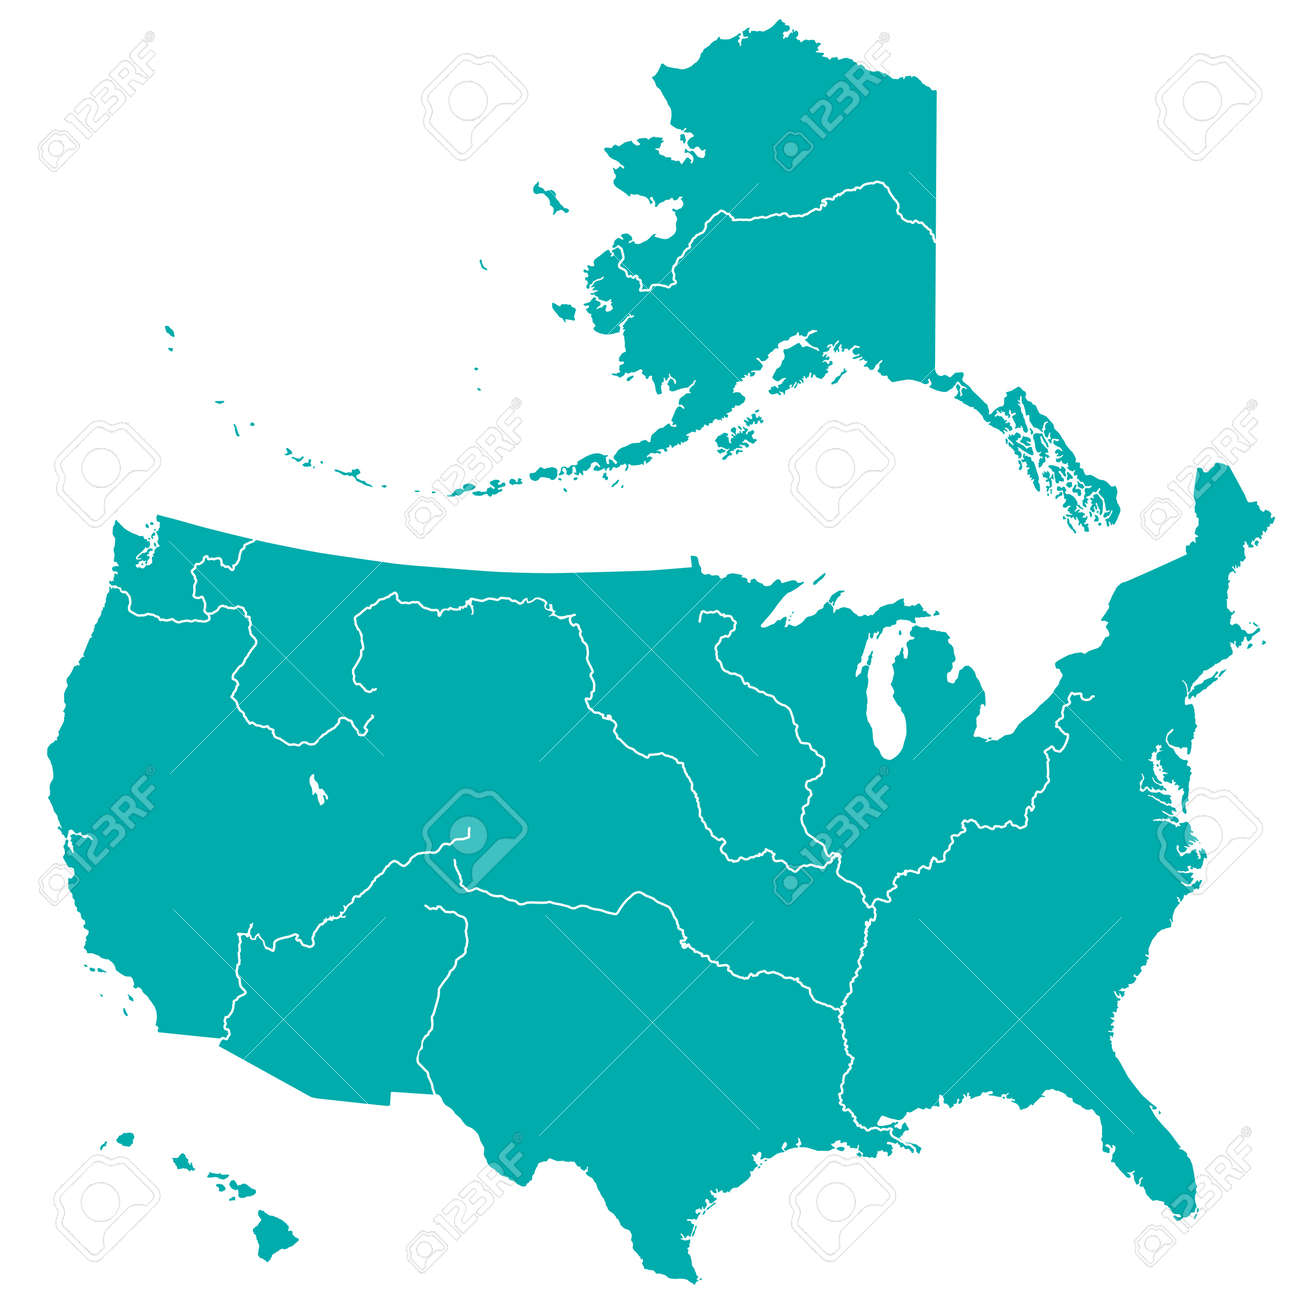 Terrestrial Silhouette Map Of The United States With Major Rivers - Major-rivers-in-the-us-map